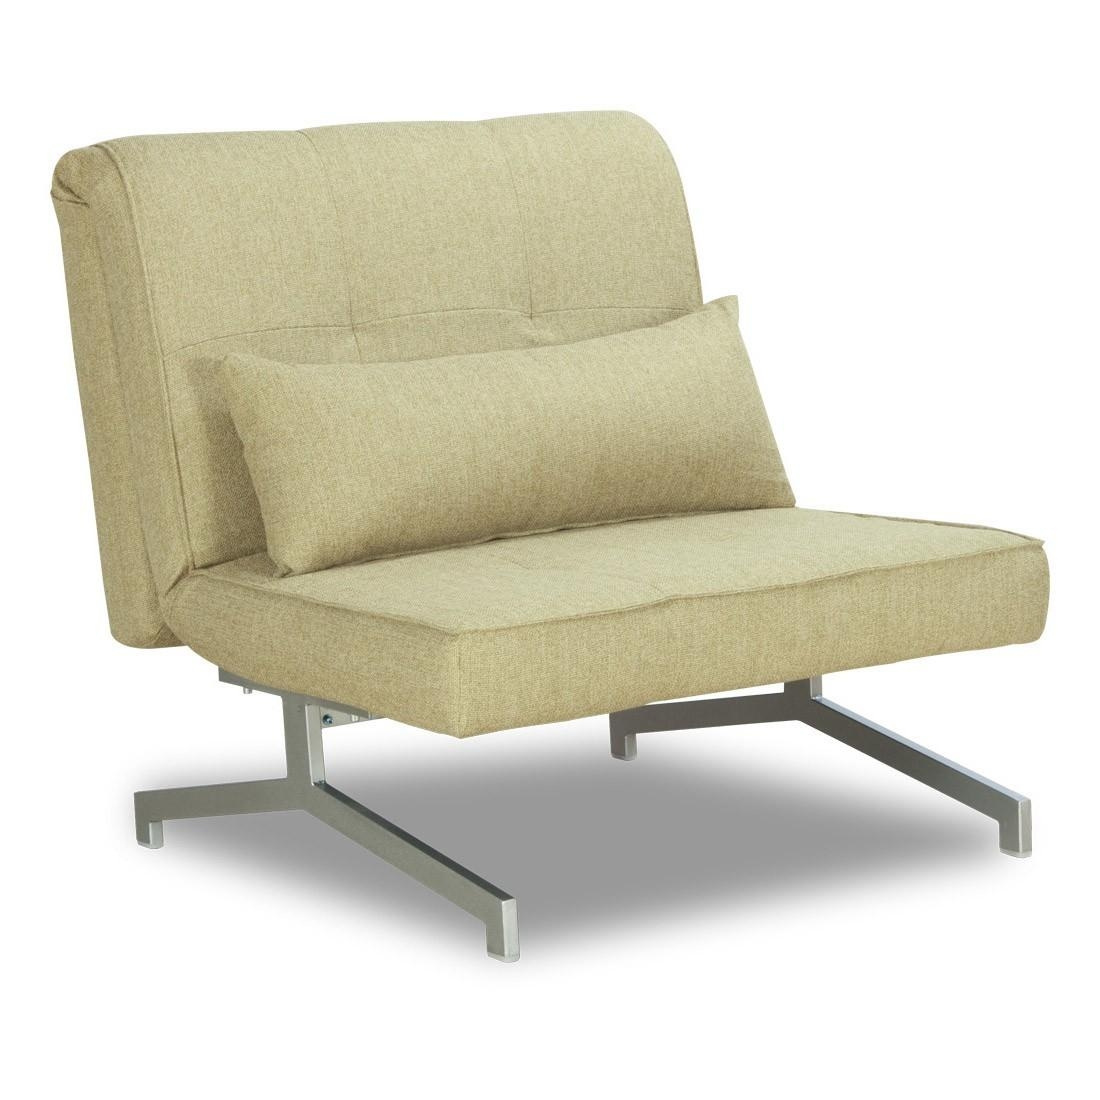 Sofas Center : Single Seat Sofa Chair Book Ofanie For Futon Intended For Single Futon Sofa Beds (Image 19 of 20)